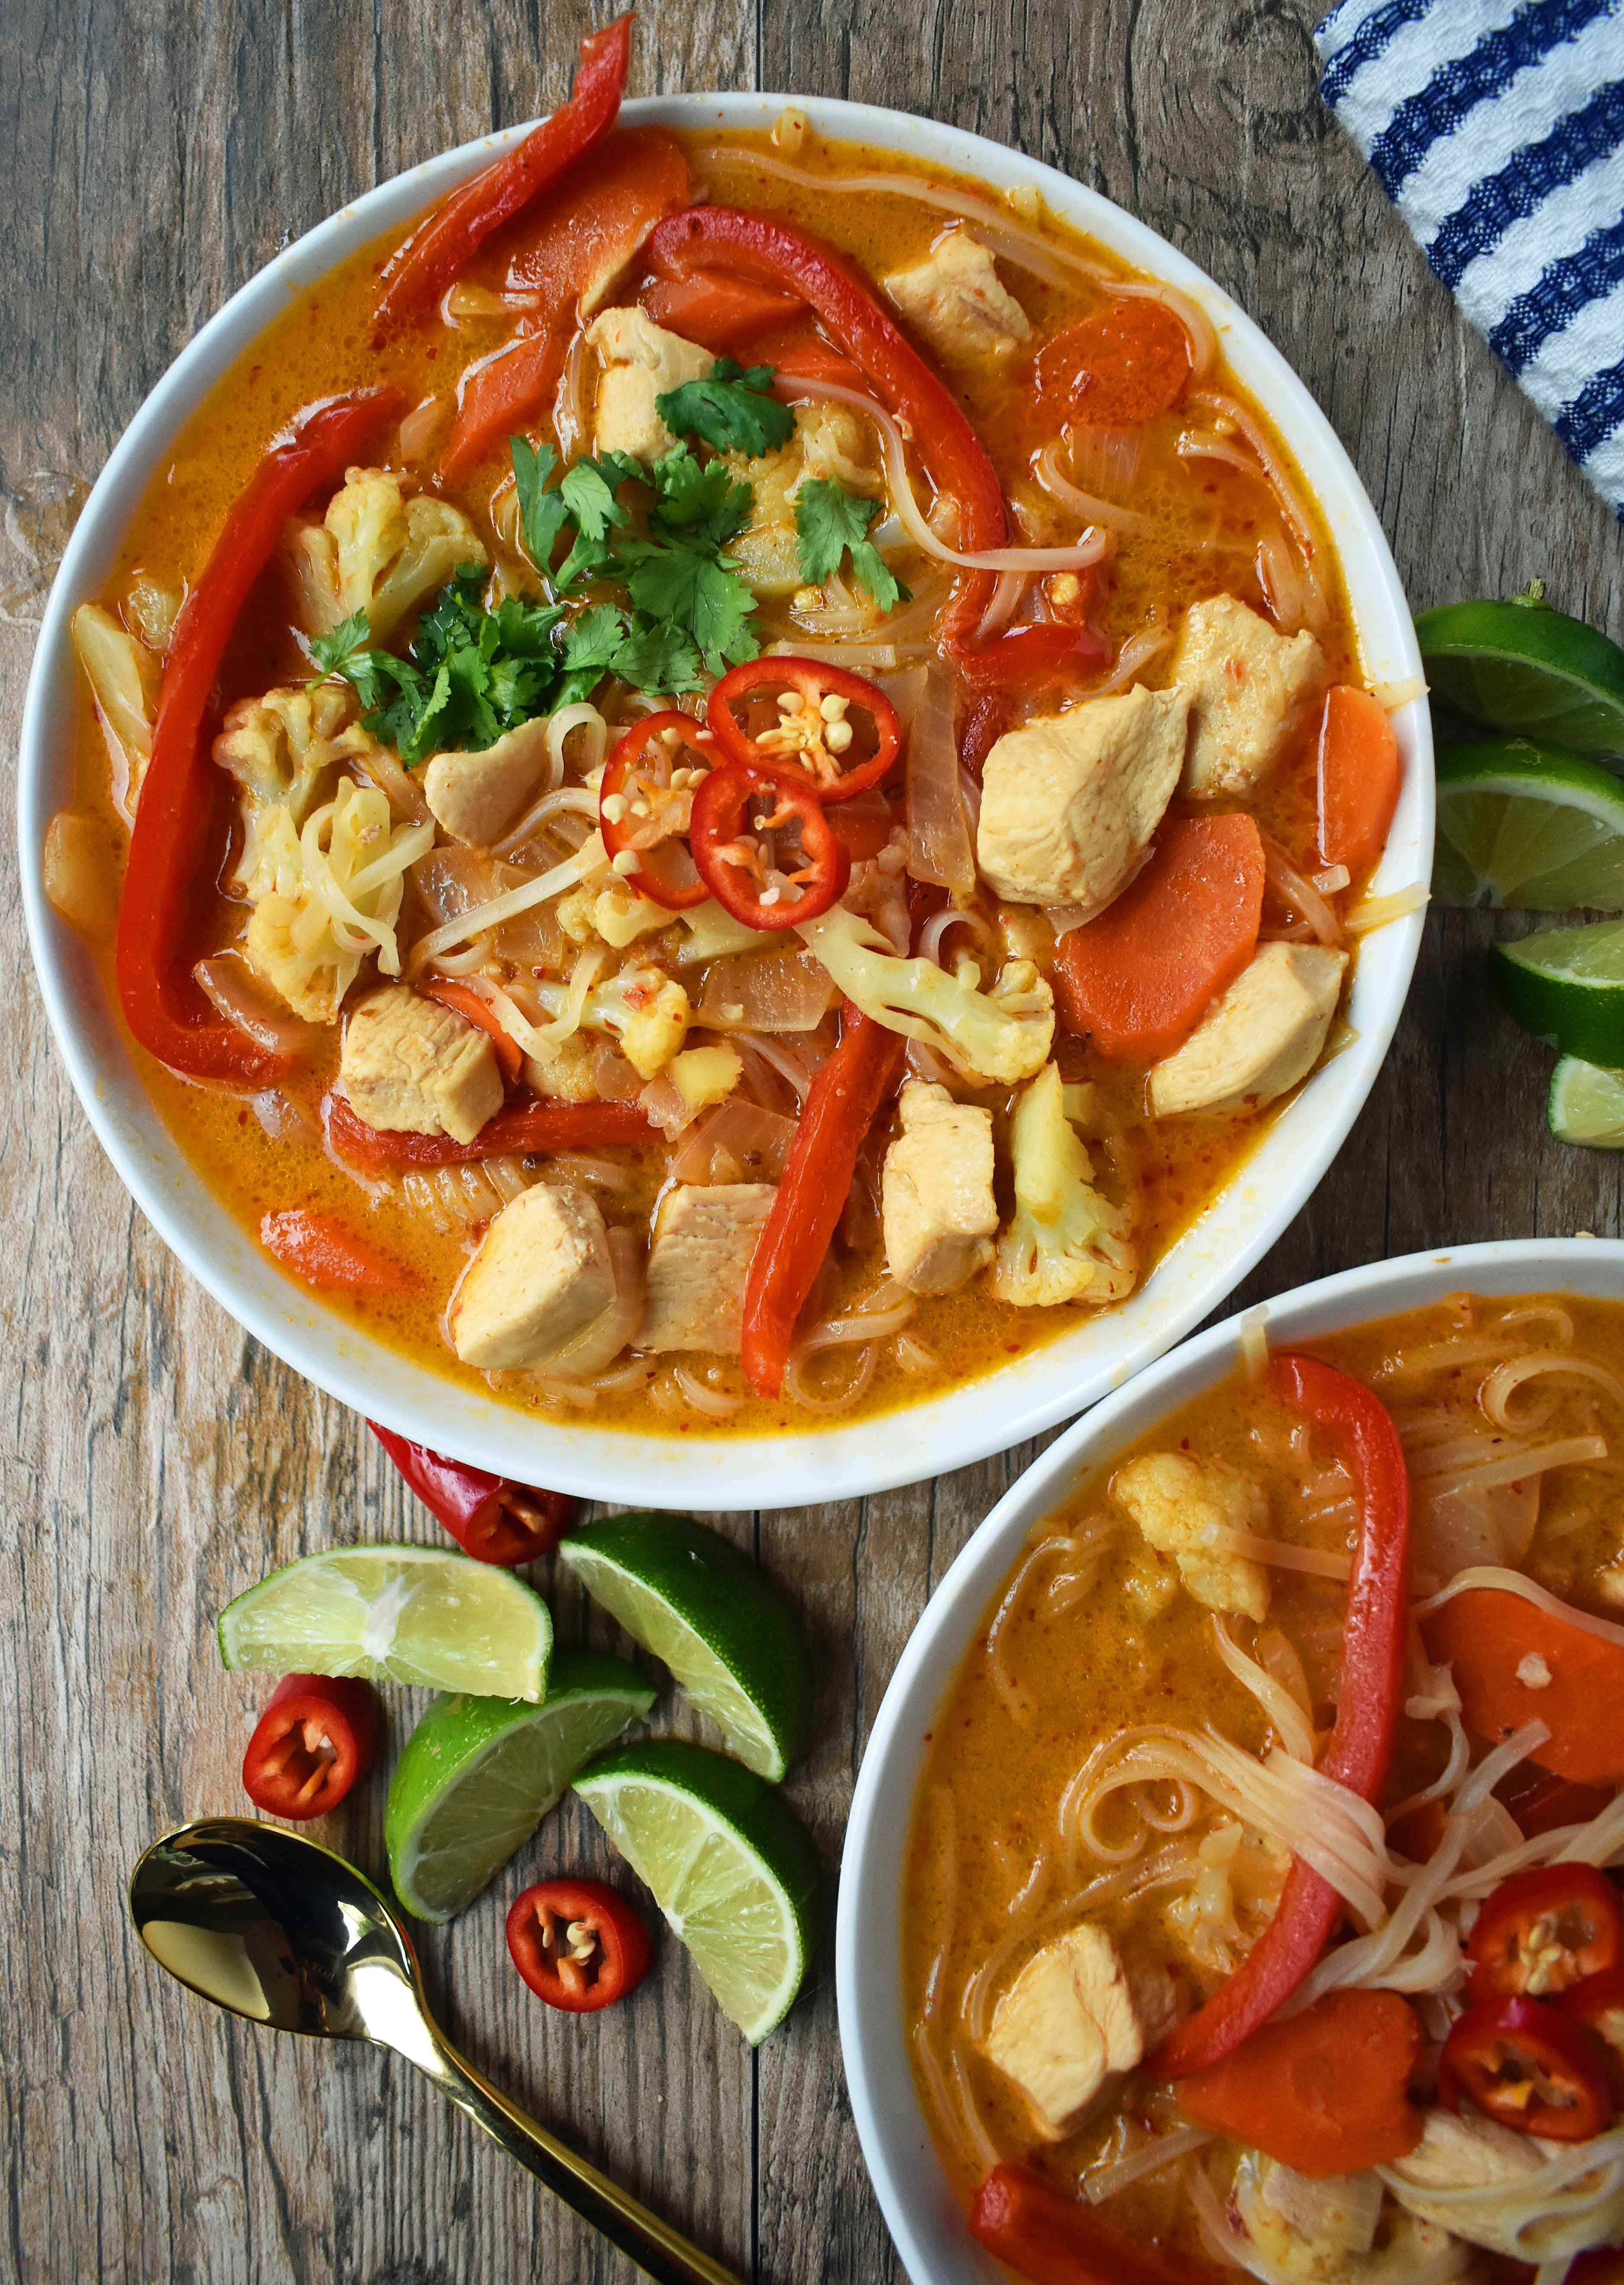 Thai Chicken Noodle Soup. Gluten-free and Dairy-Free nutritious soup that is full of flavor. A rich coconut milk red curry based broth filled with onions, carrots, ginger, cauliflower, and red pepper. A healthy and delicious soup that everyone loves! www.modernhoney.com